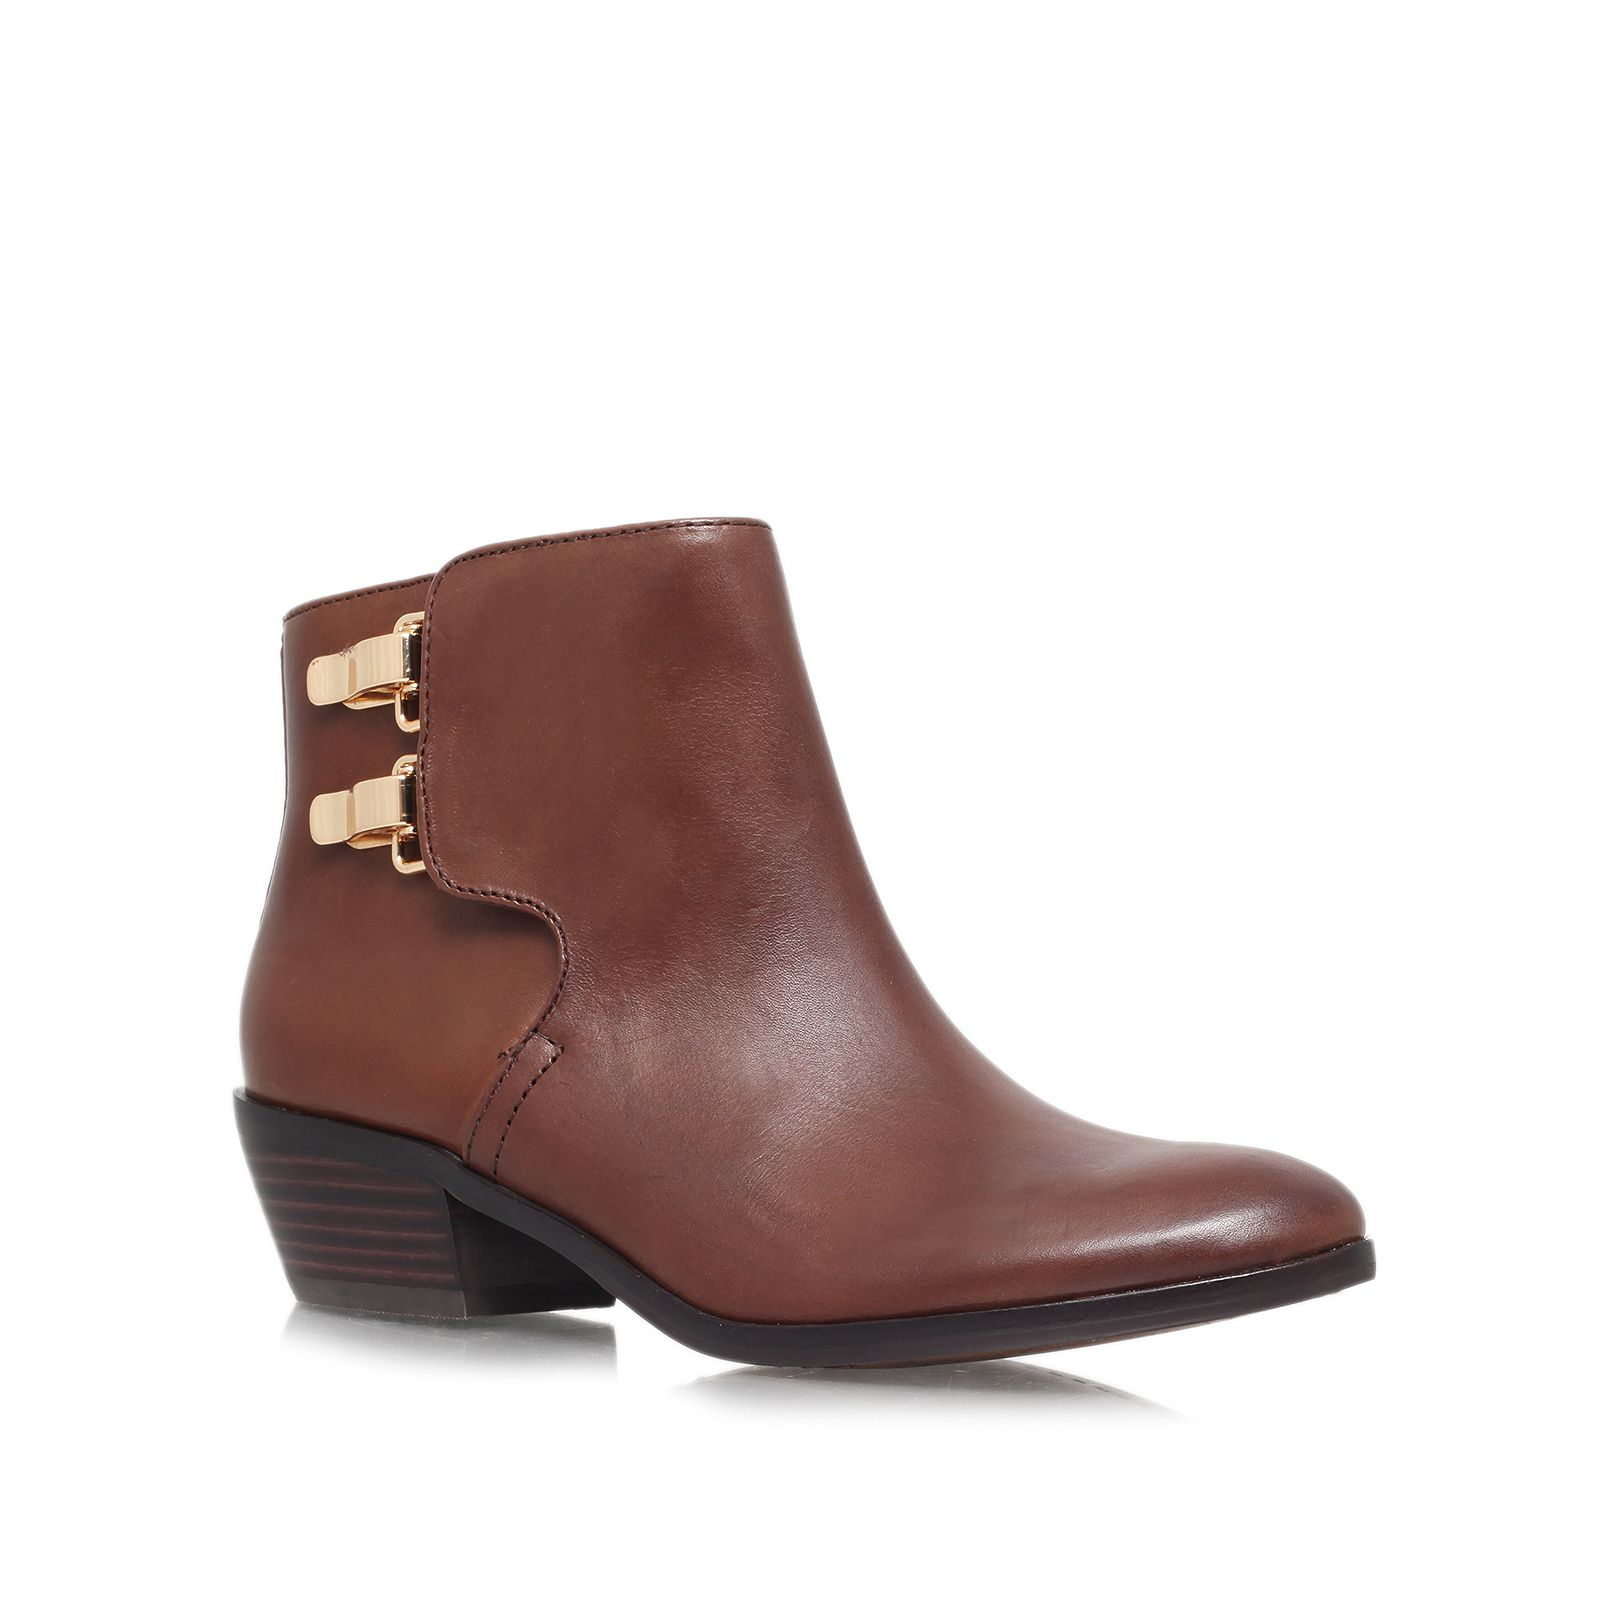 Peter Low Heeled Ankle Boots